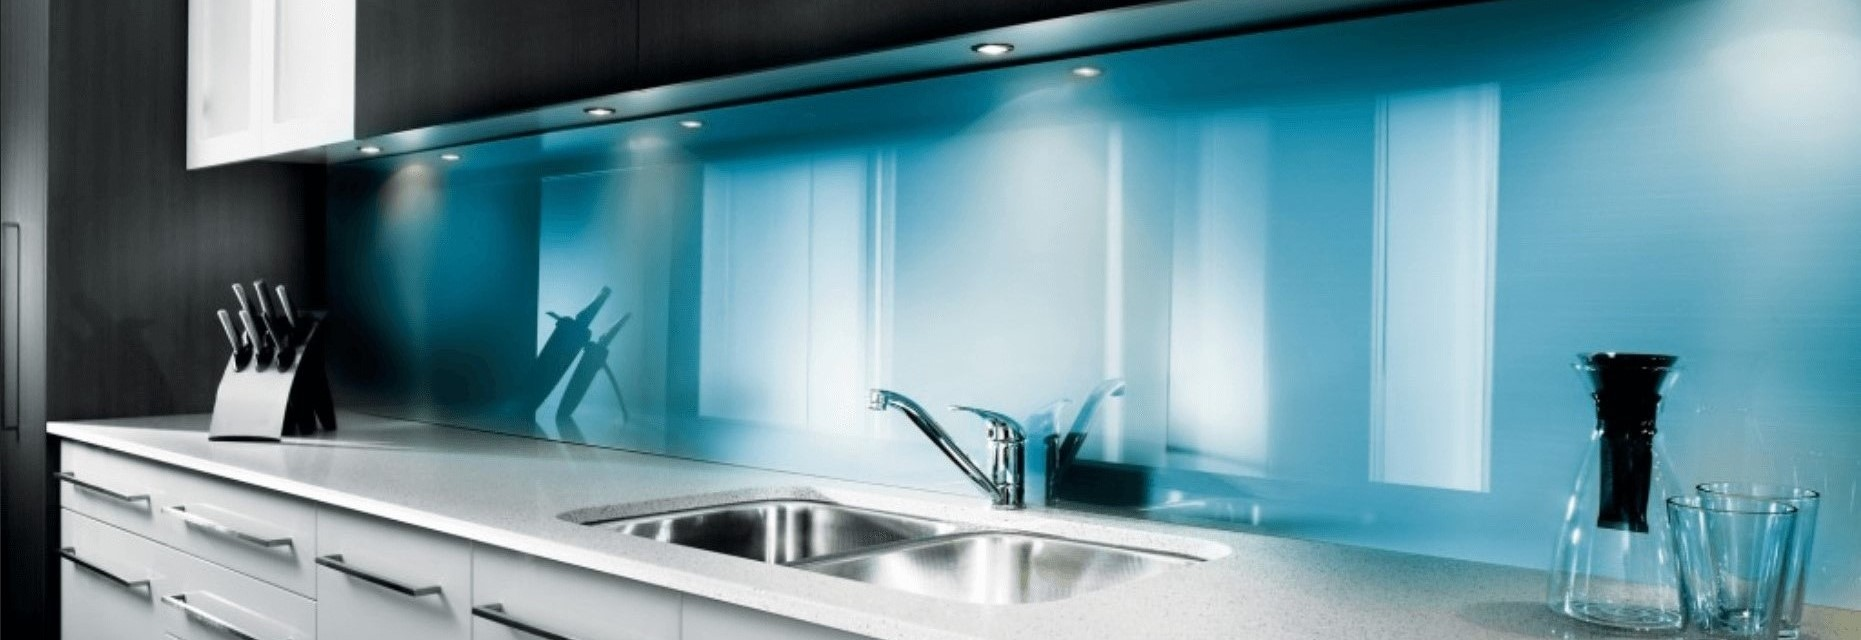 Custom Splashbacks